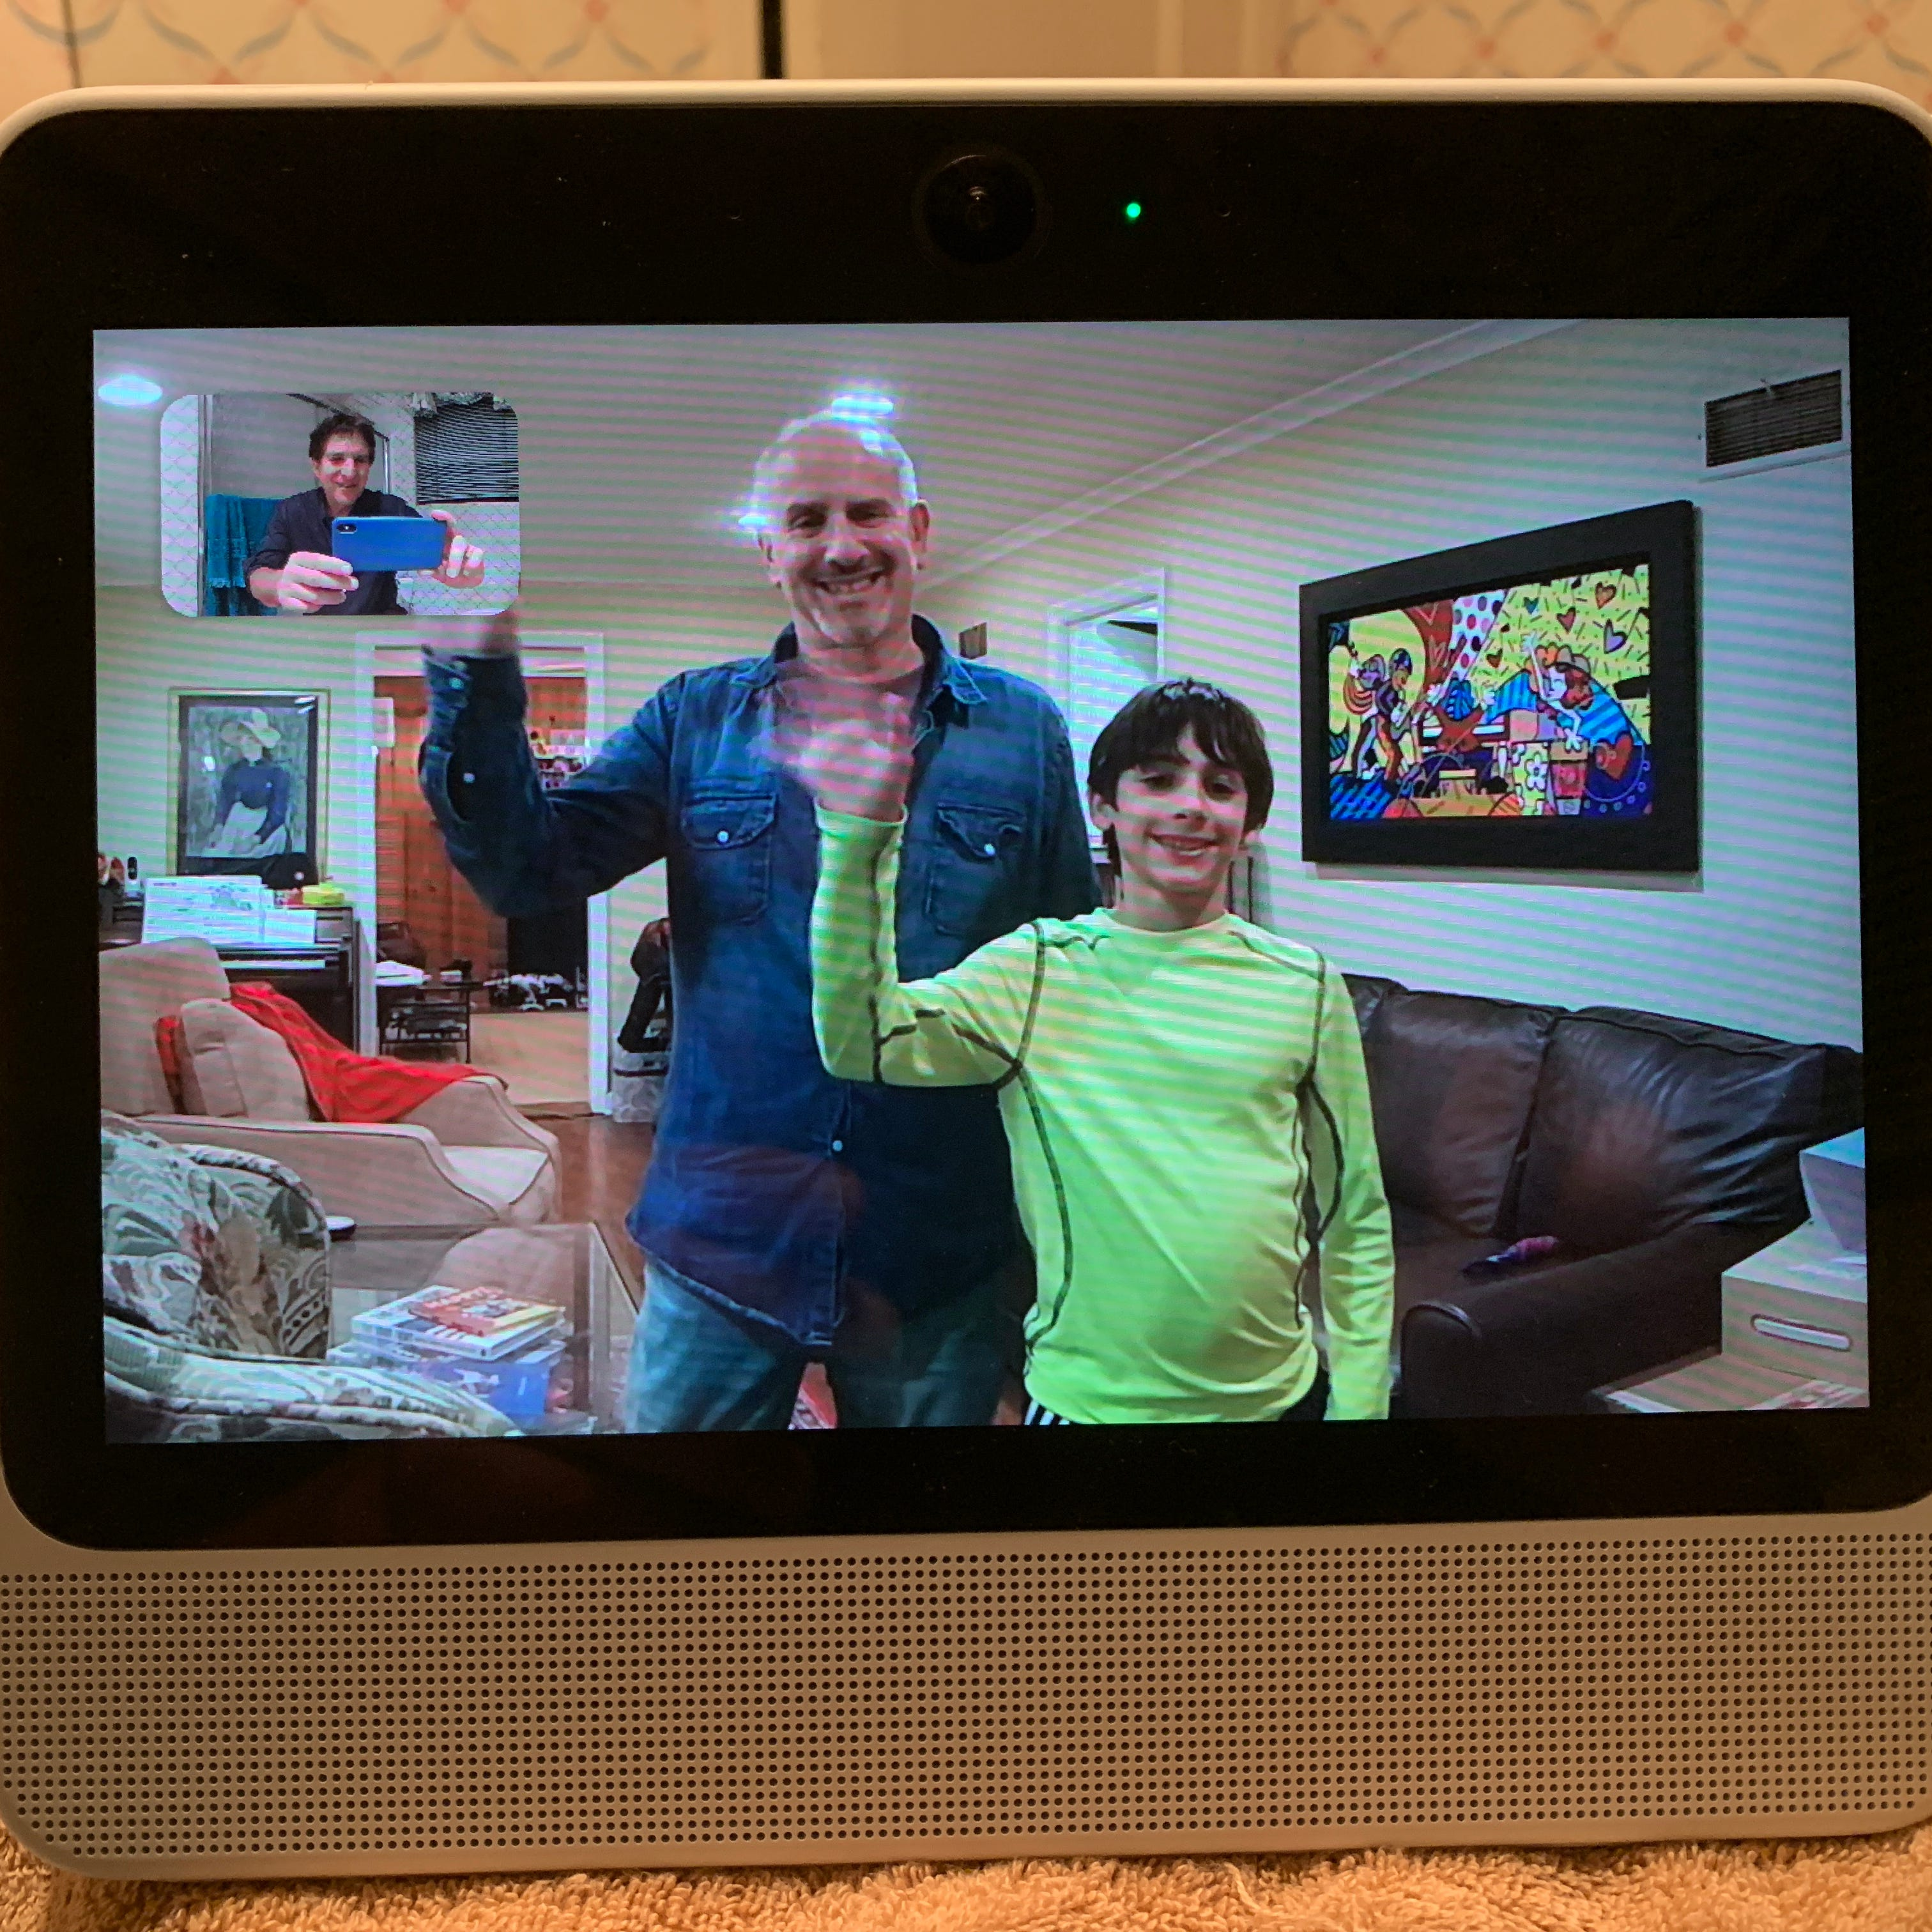 USA TODAY's Edward C. Baig and son Sam waves to Jefferson Graham during a video chat on the Facebook Portal device